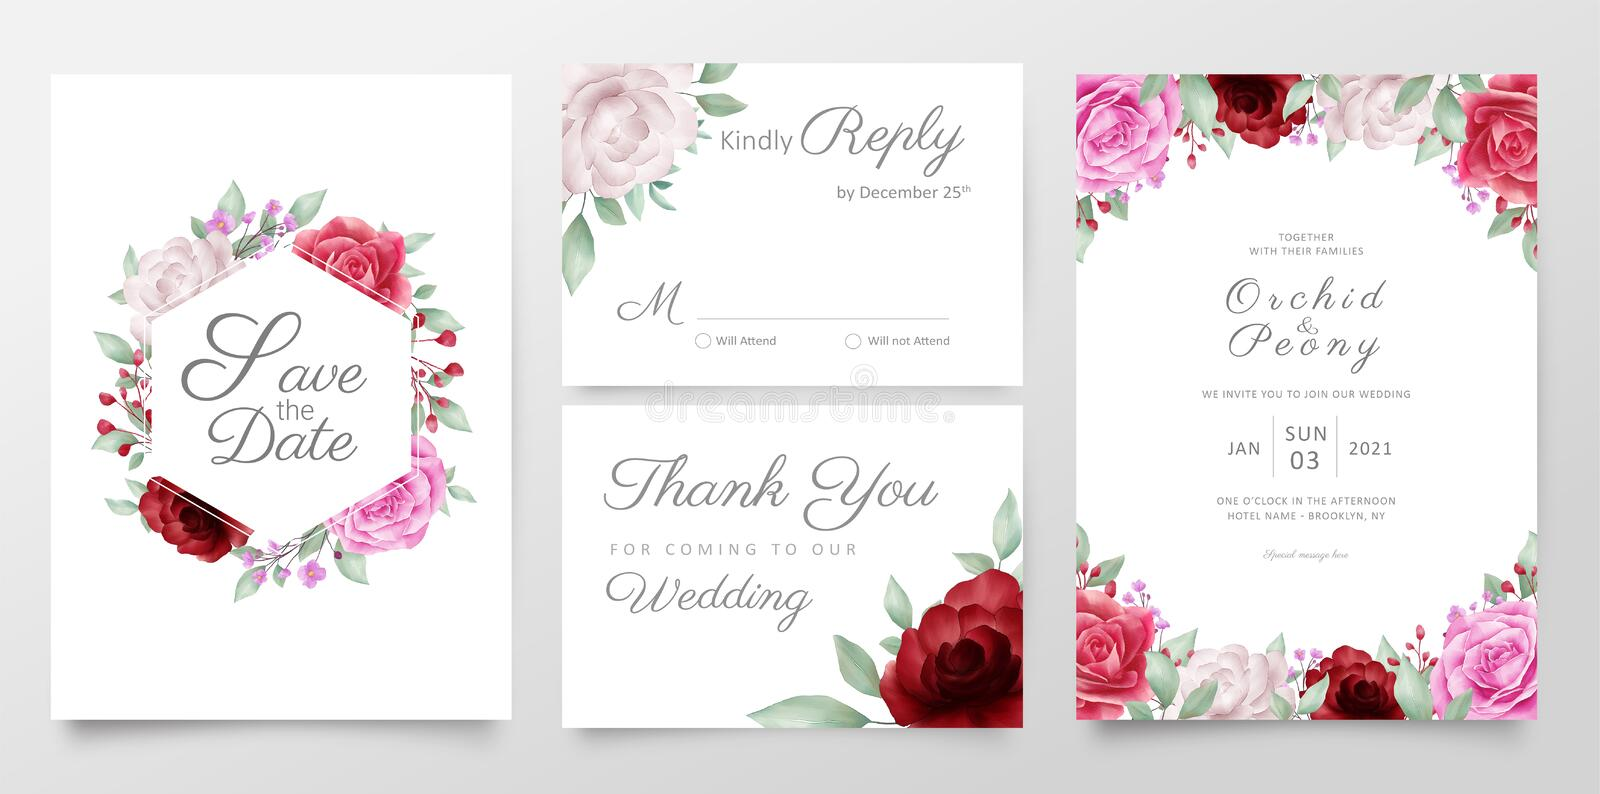 Elegant flowers wedding invitation cards template set. Editable vector save the date, thank you, rsvp, invitation card vector illustration